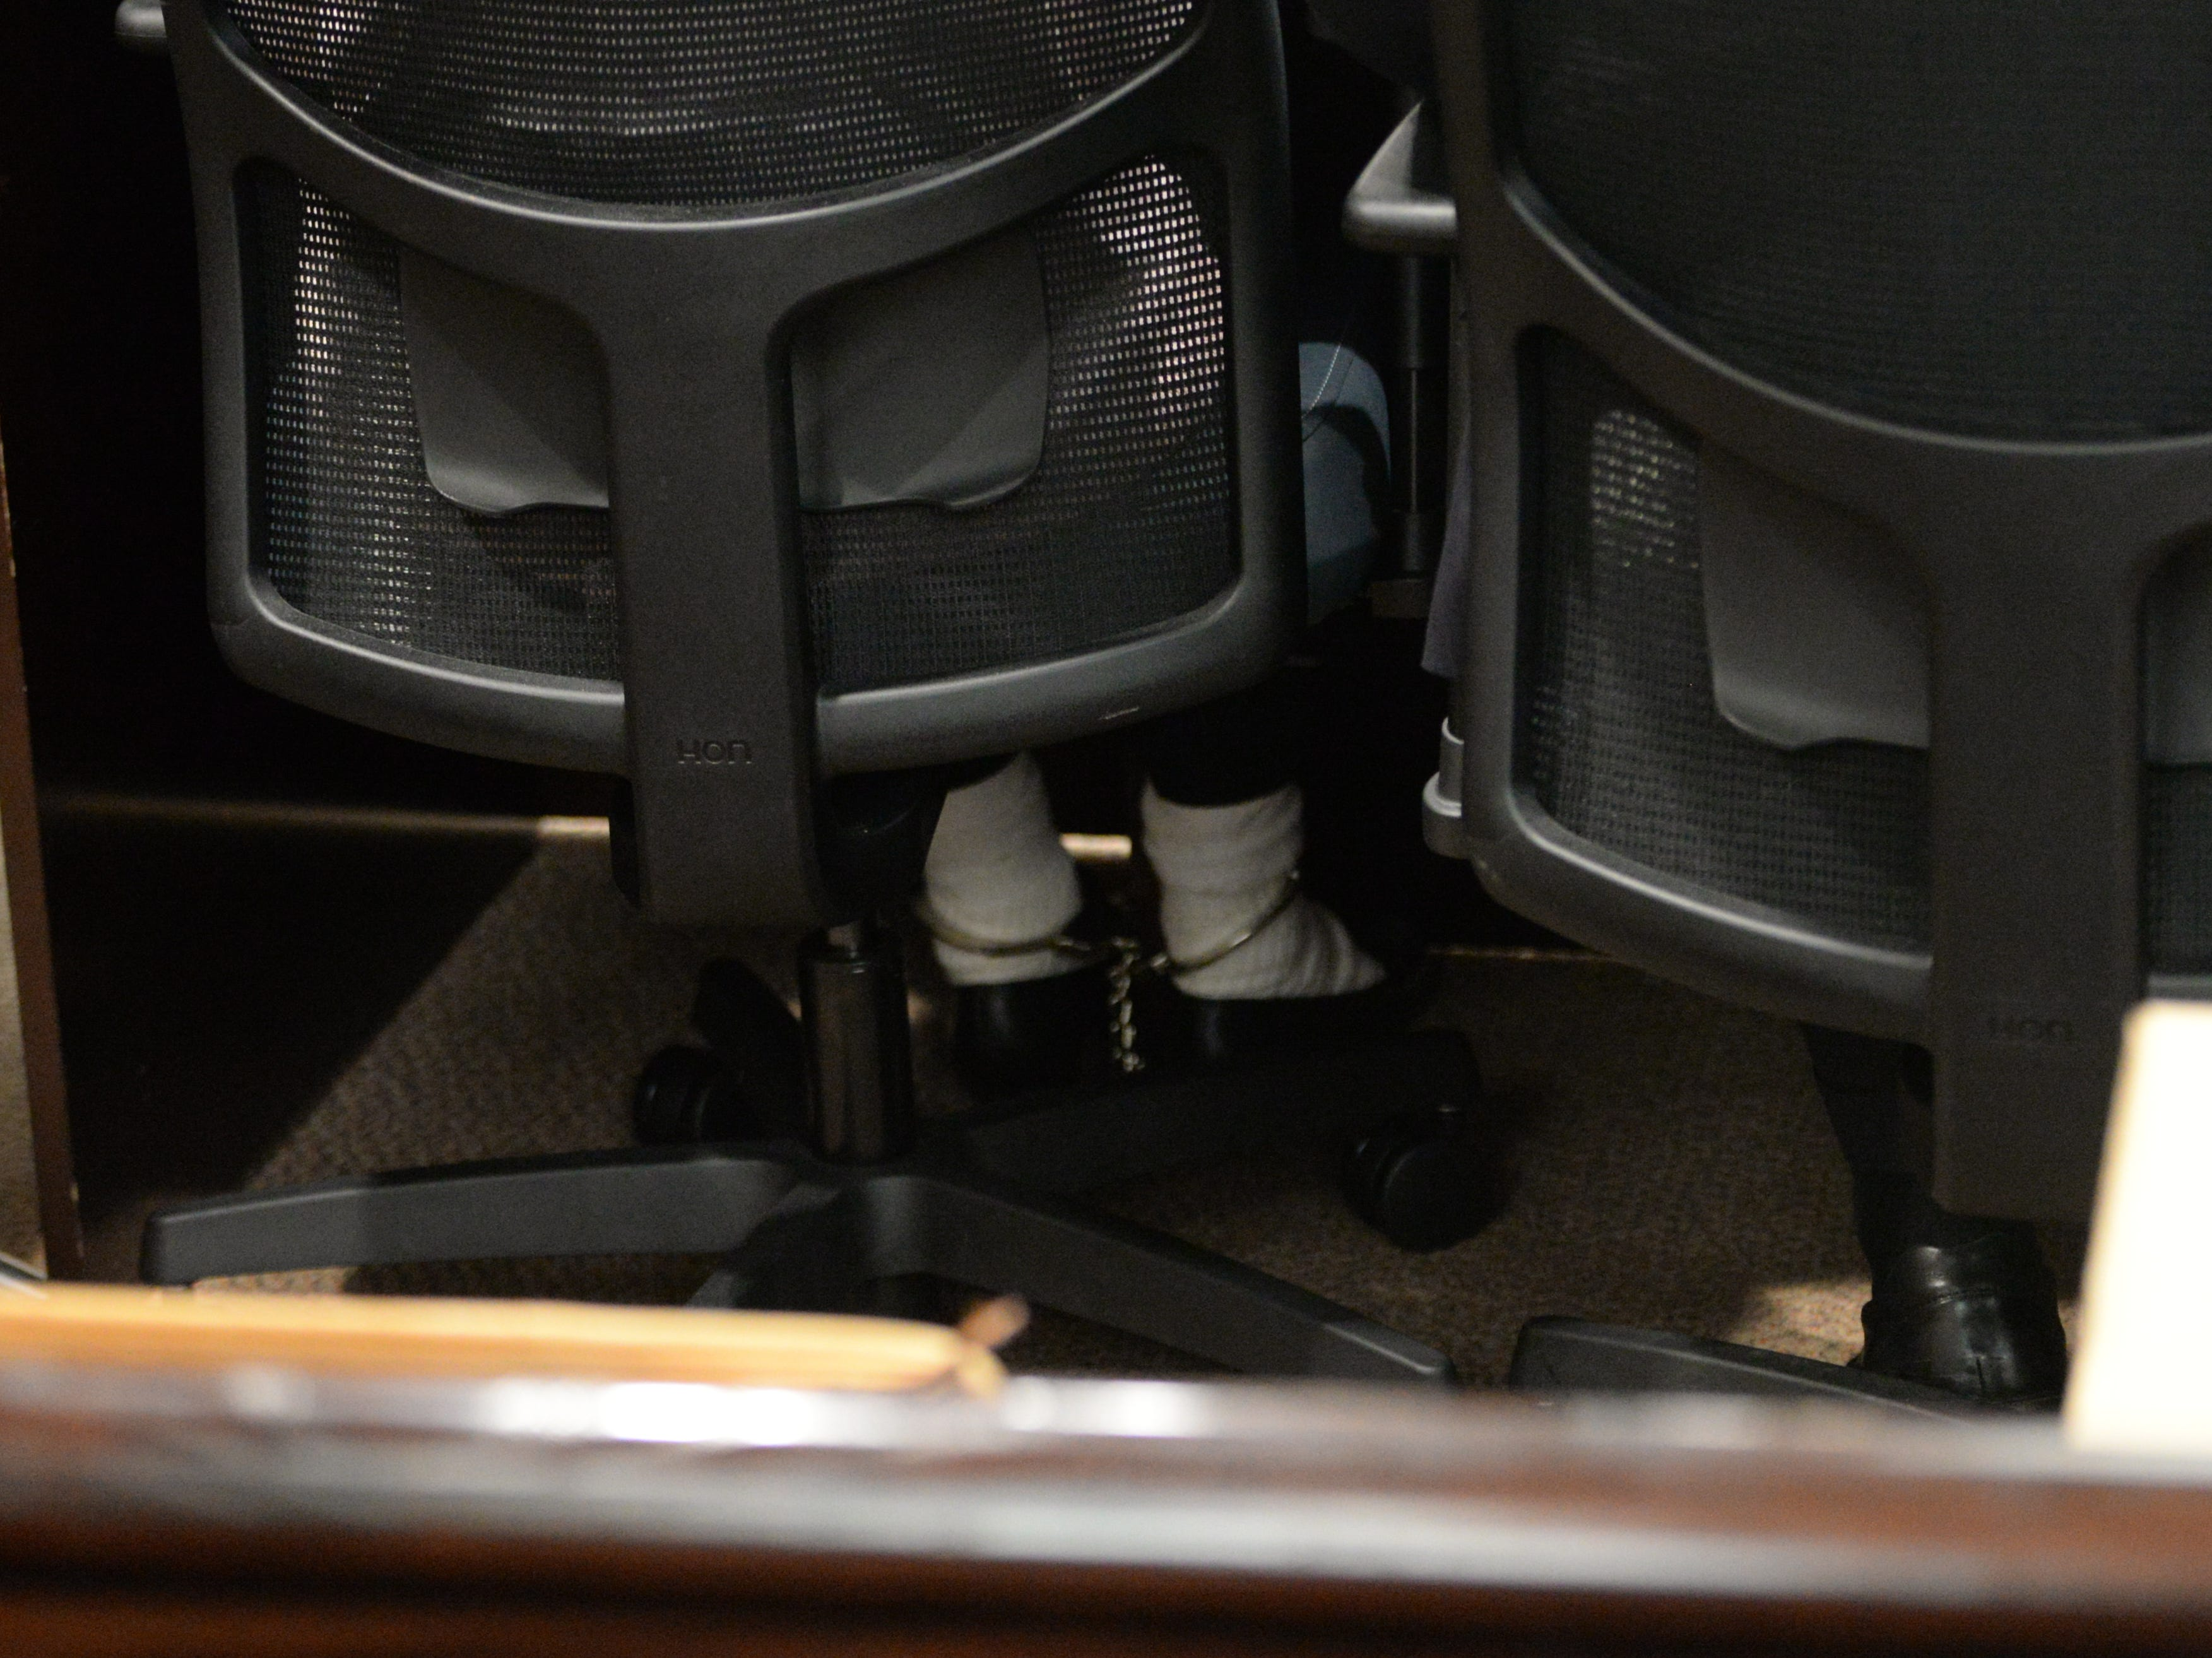 Denise Williams ankles are shackled as she is brought in for the reading of the verdict as the verdict in her trial for the murder of her husband Mike Williams at the Leon County Courthouse Friday, Dec. 14, 2018.